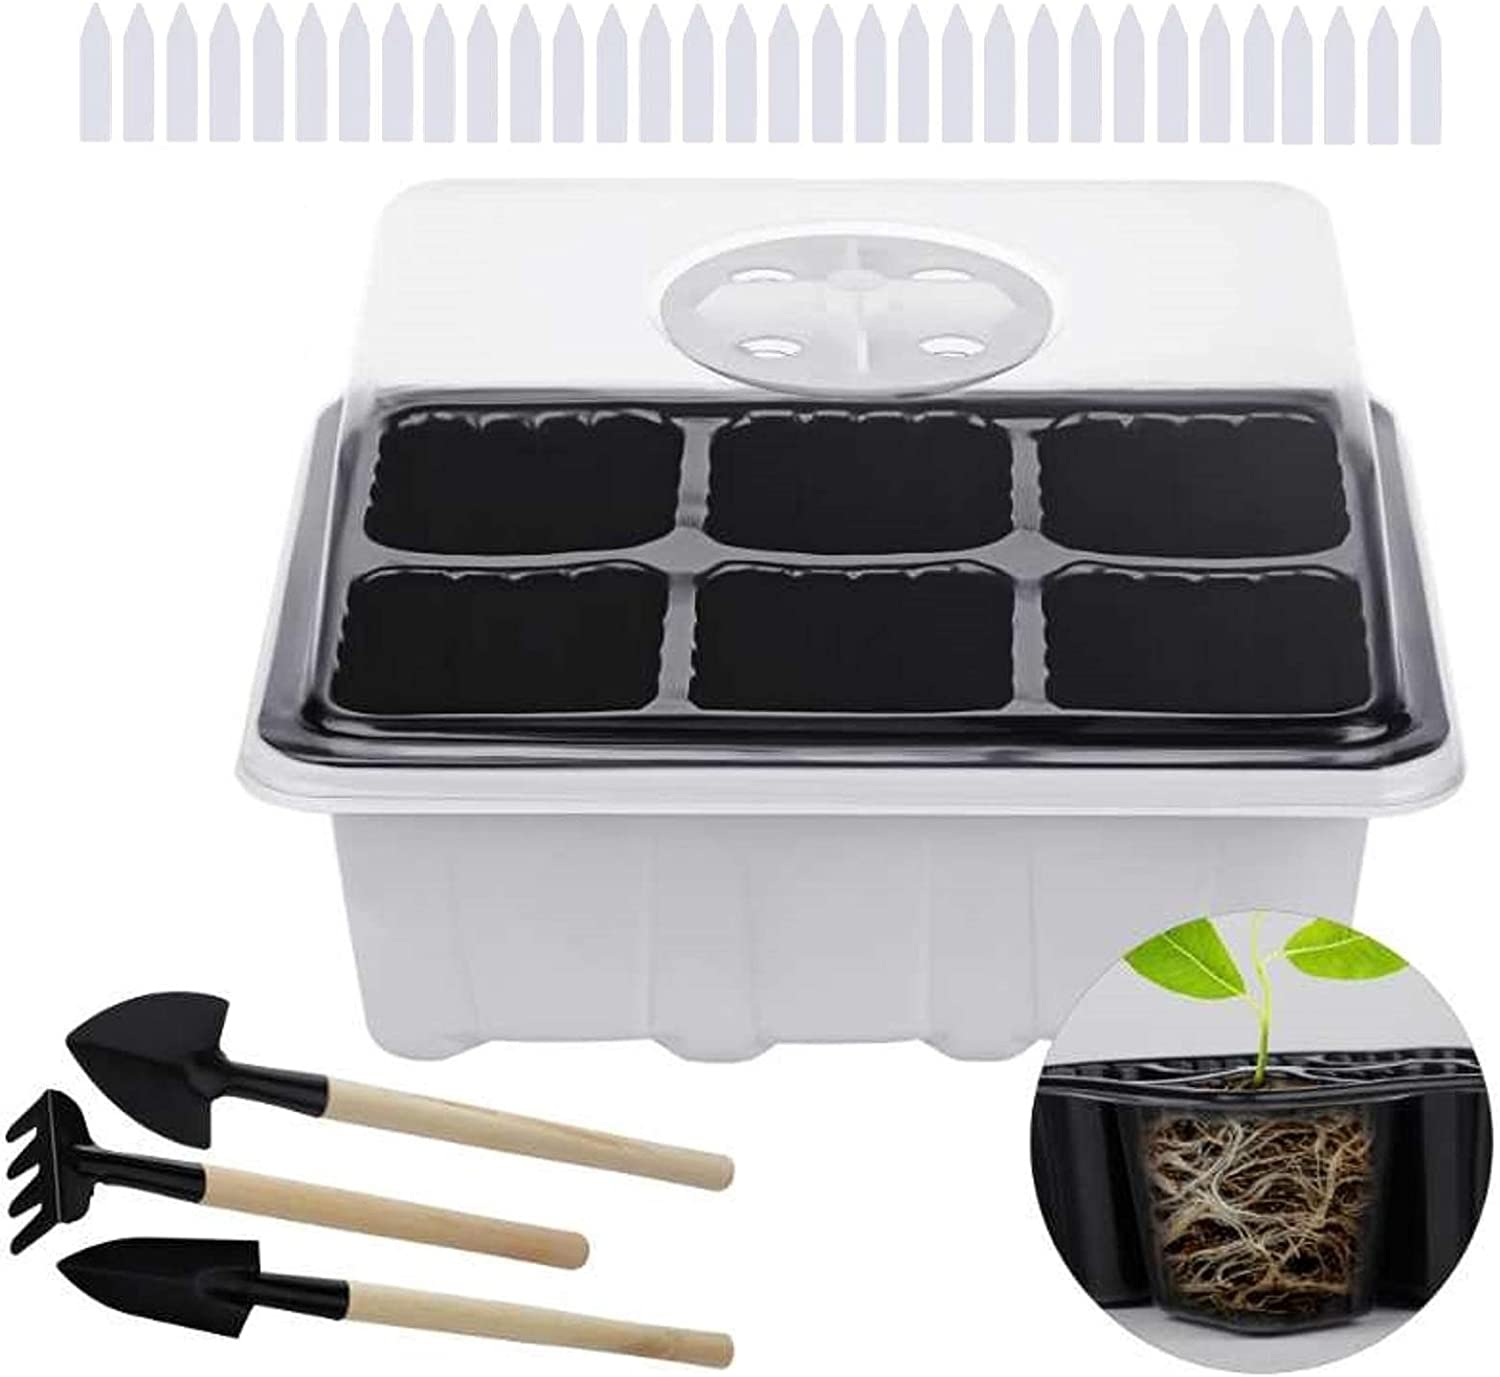 ZeeDix 12 Set Seedling Trays Seed Starter Kit- 72 Cells Plant Grow Kit, Garden Seed Propagator Premium Seedling Dome and Tray with 5 Inch Vented Humidity Dome(6 Cells Per Tray)